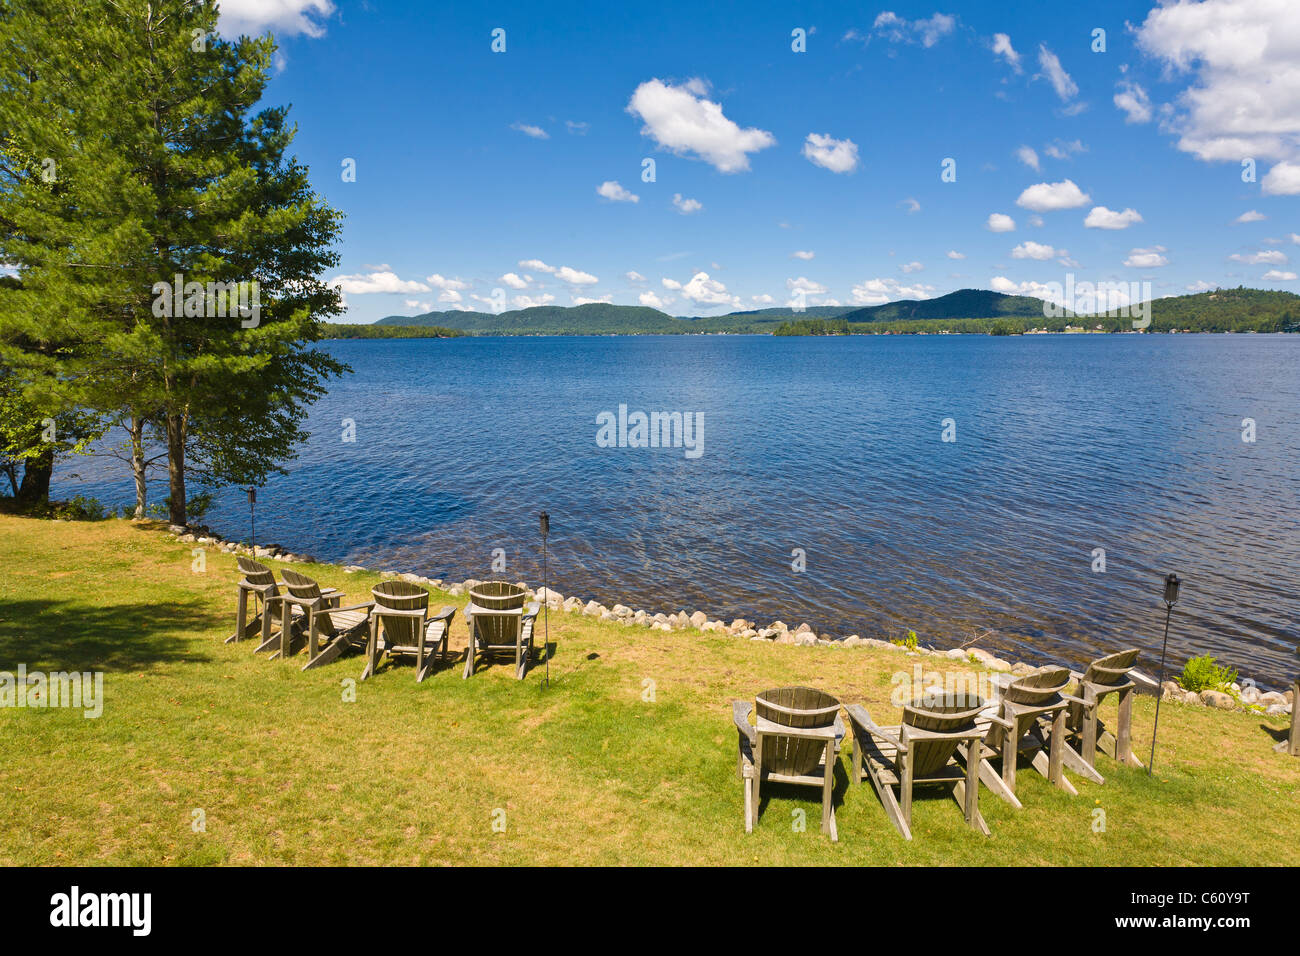 new river adirondack chairs red jasper lawn stock photos and